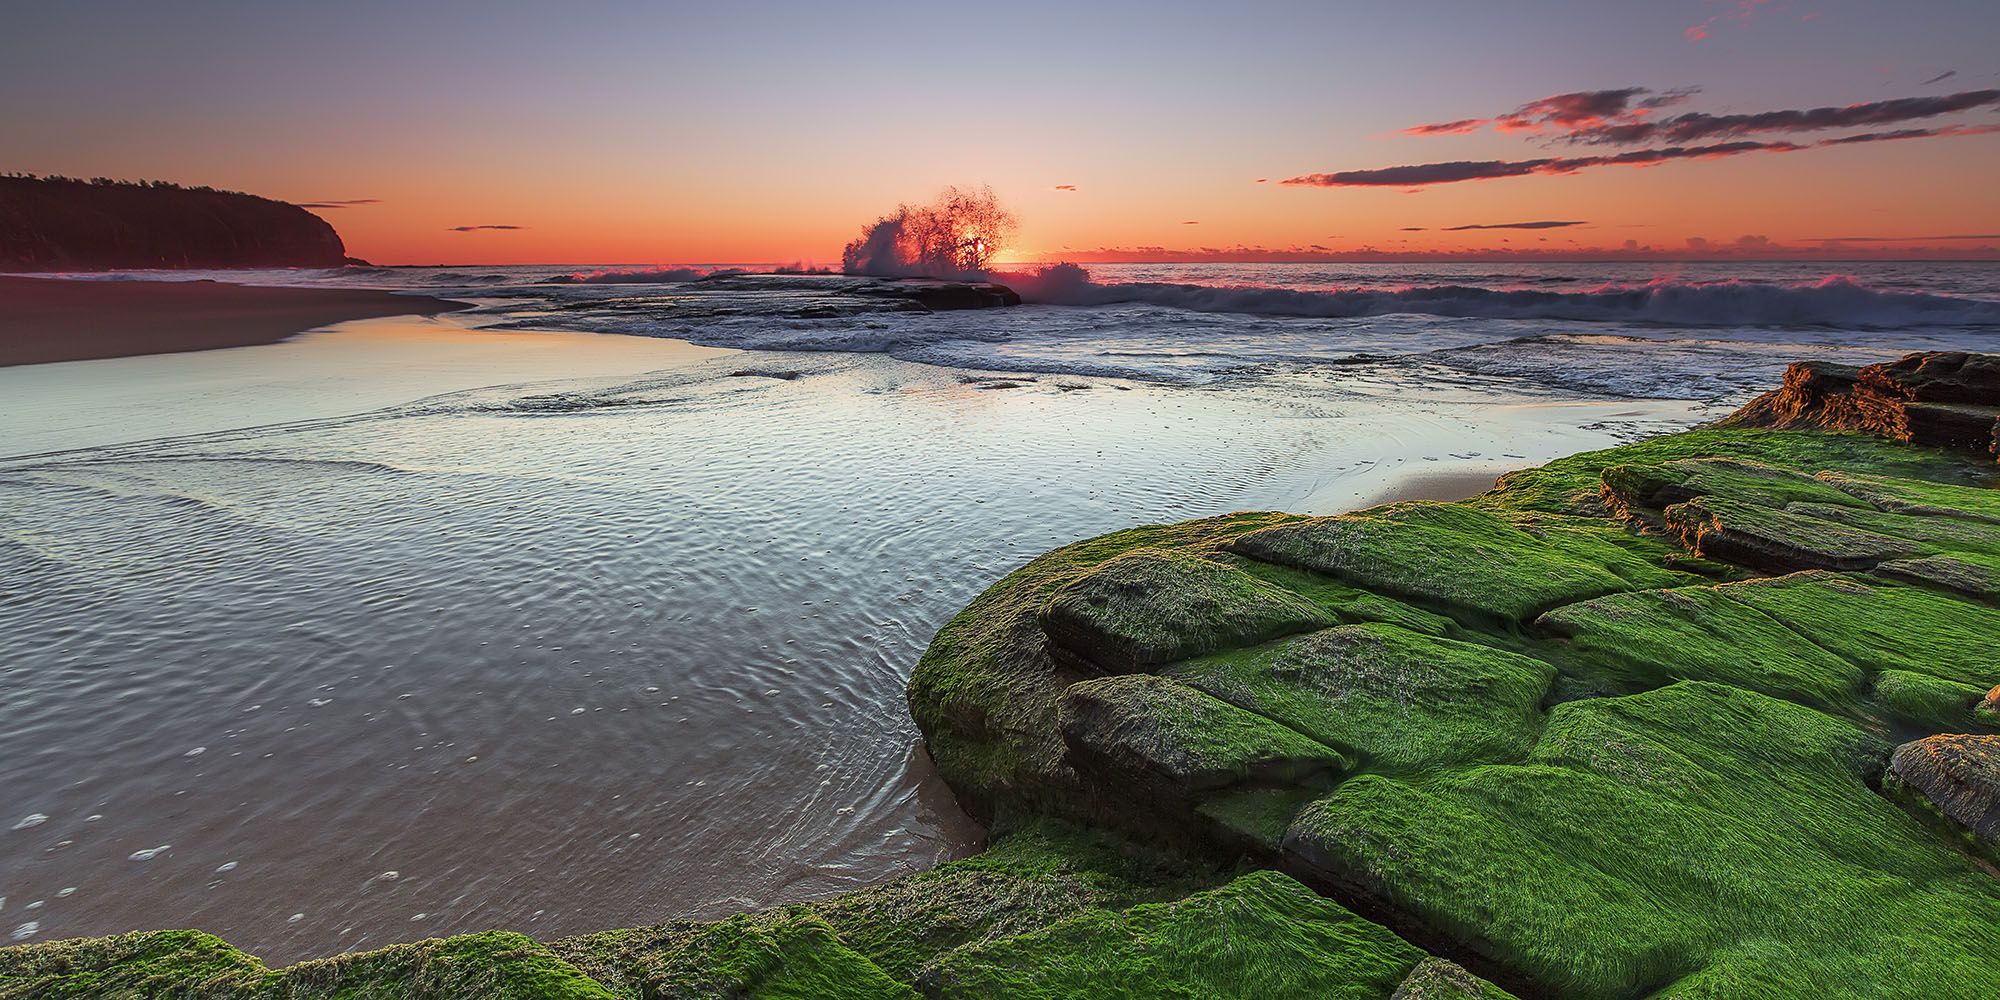 turimetta beach at sunrise